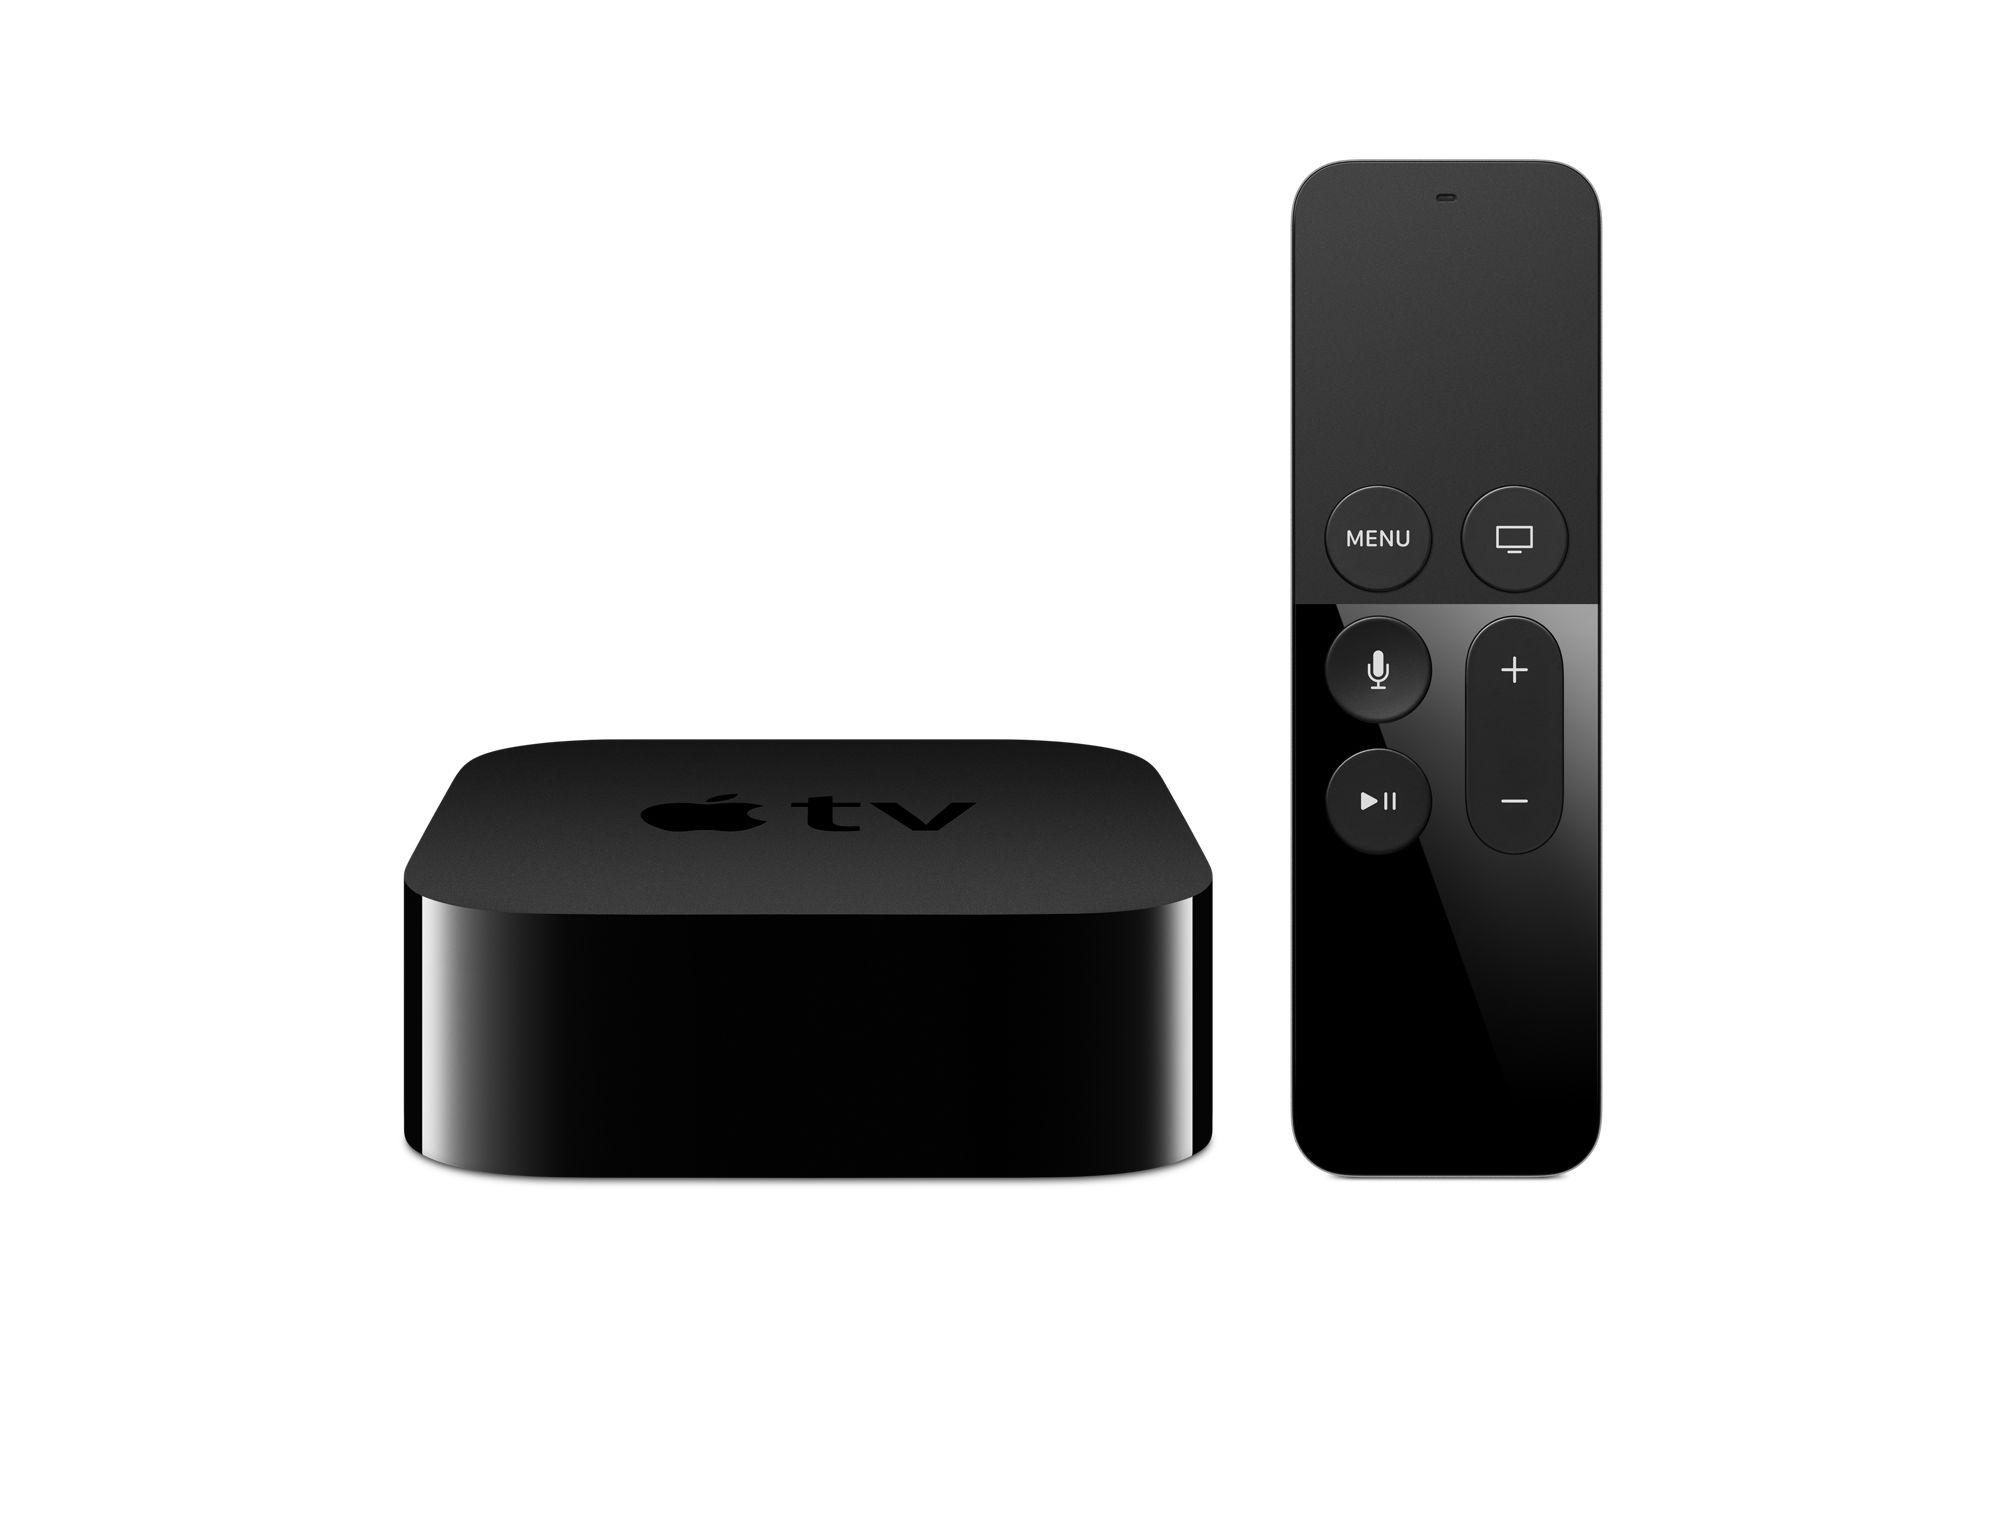 The new Apple TV was apparently a popular Christmas gift